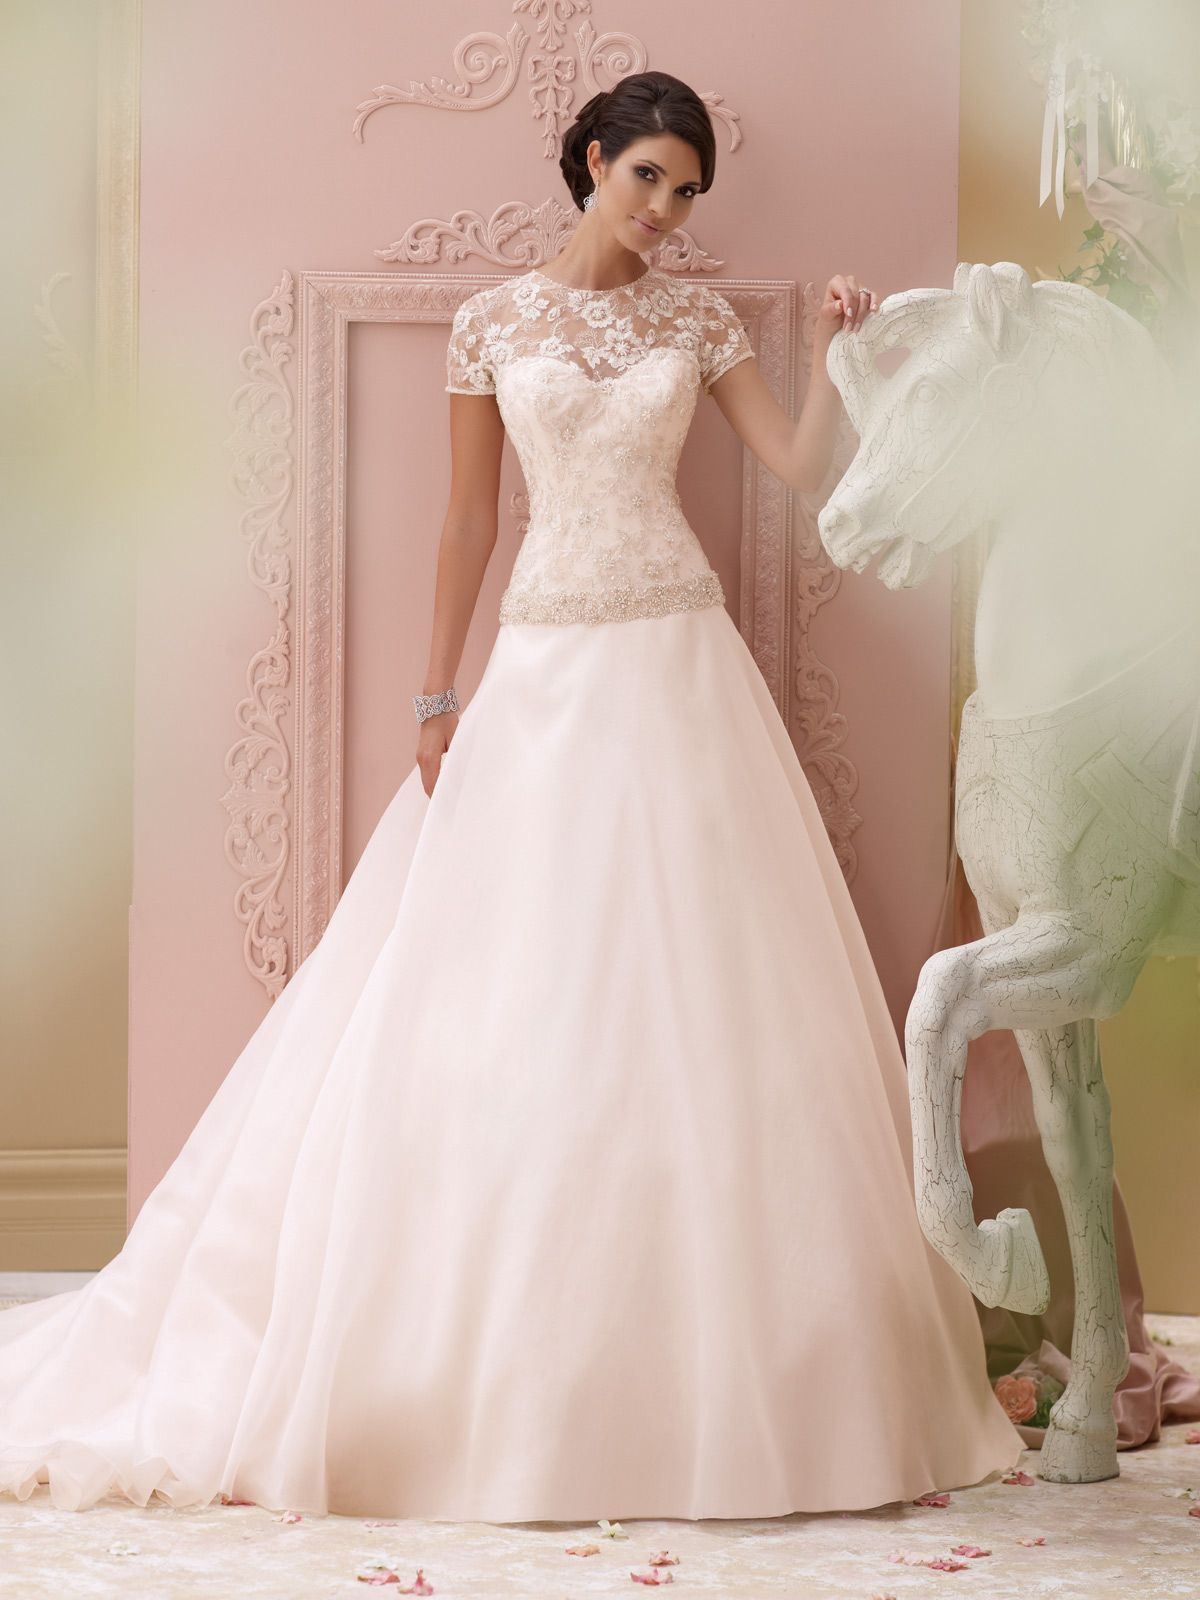 Wedding dresses 2017 spring 2018 2015 wedding dresses dress style 115252 arabella is a traditional short sleeve wedding dress designed by david tutera ombrellifo Choice Image